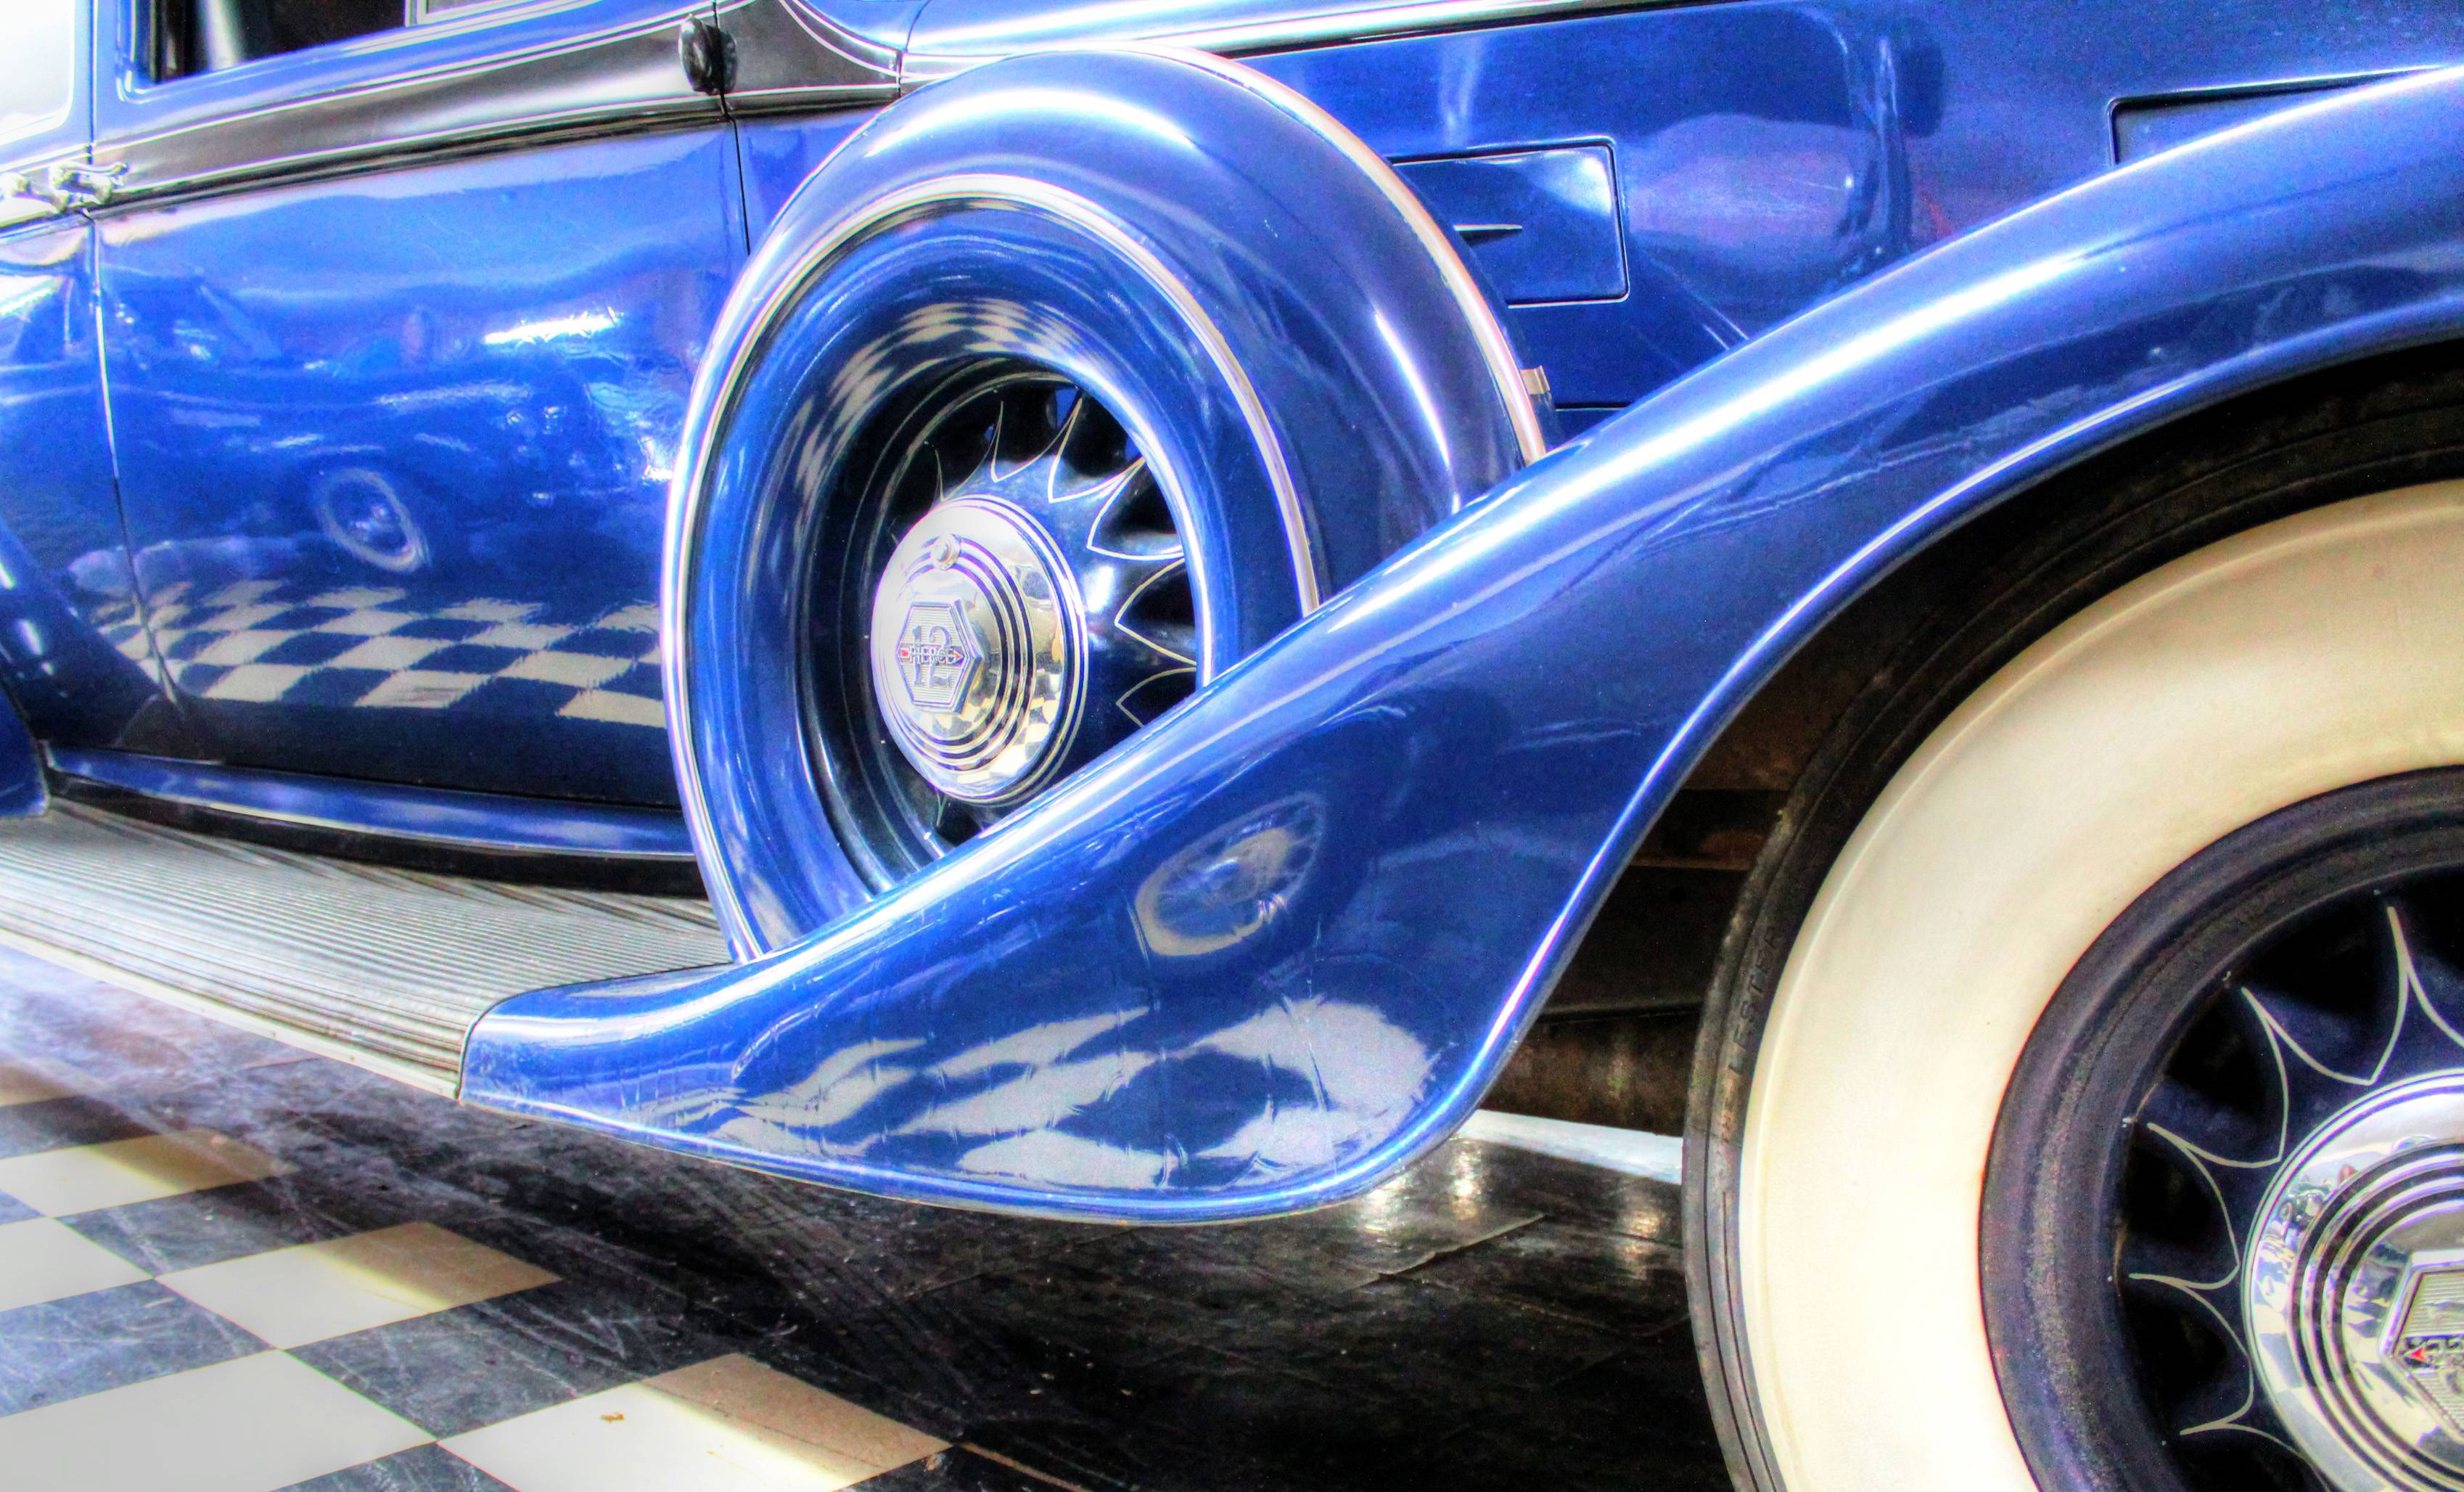 At the Volo Auto Museum, I photographed this car with the checkered floor reflecting off its body. The pattern of the floor distorts and moves with the contours of the car. Another car of similar style can be seen reflected off this car as well. I liked how the photo contains many different elements of pattern and shape as well as good contrast and lighting.